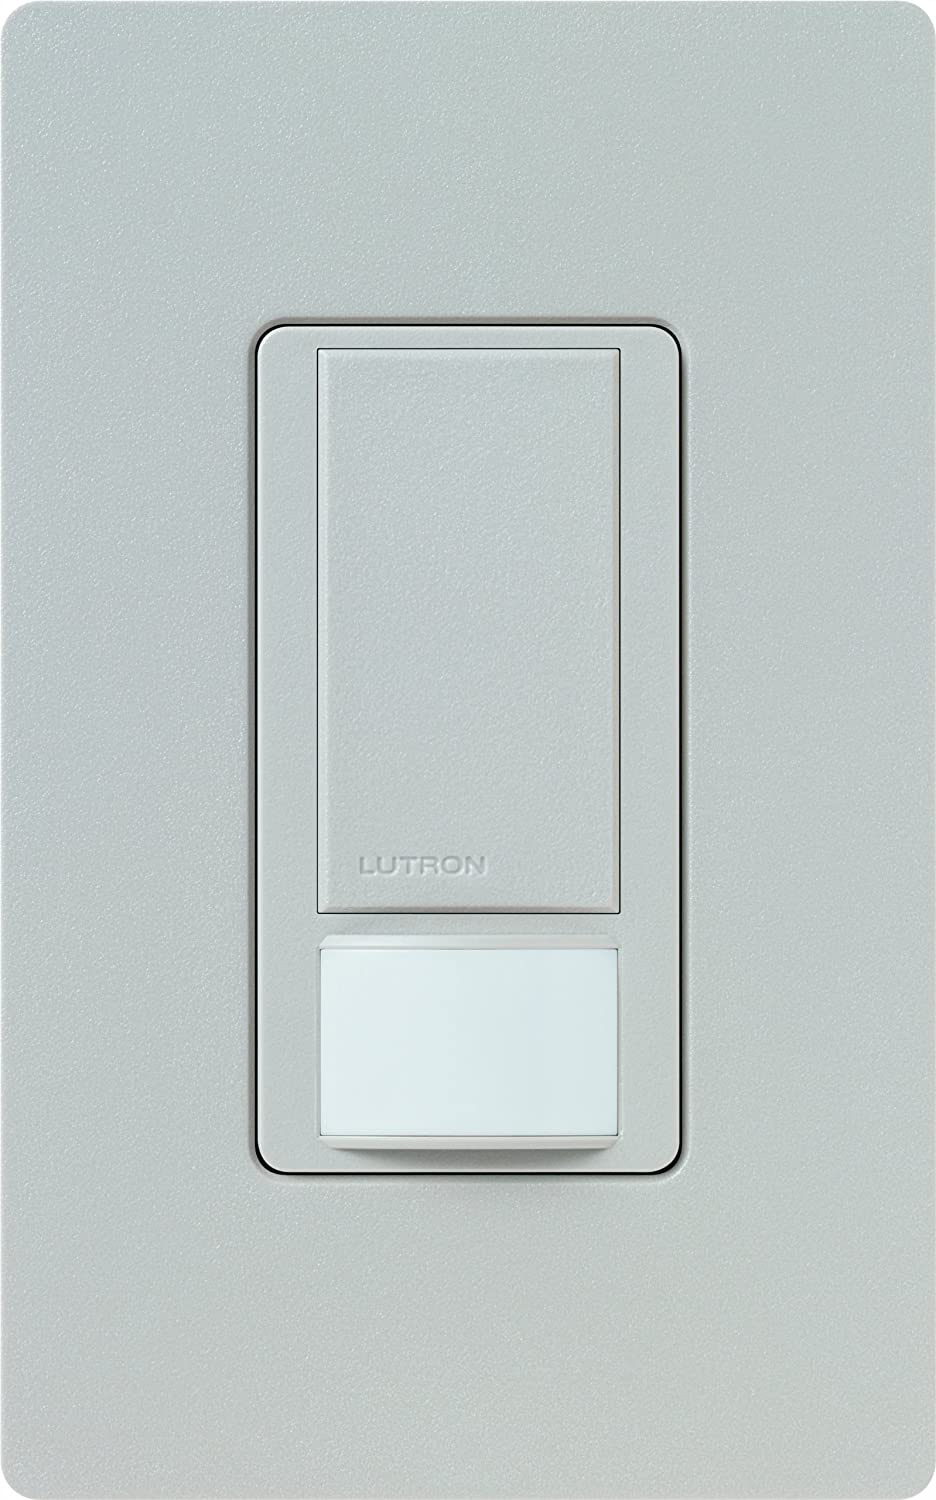 Lutron Maestro Sensor Switch 2a No Neutral Required Single Pole Light Ms Ops2 Tp Taupe Electrical Outlet Switches